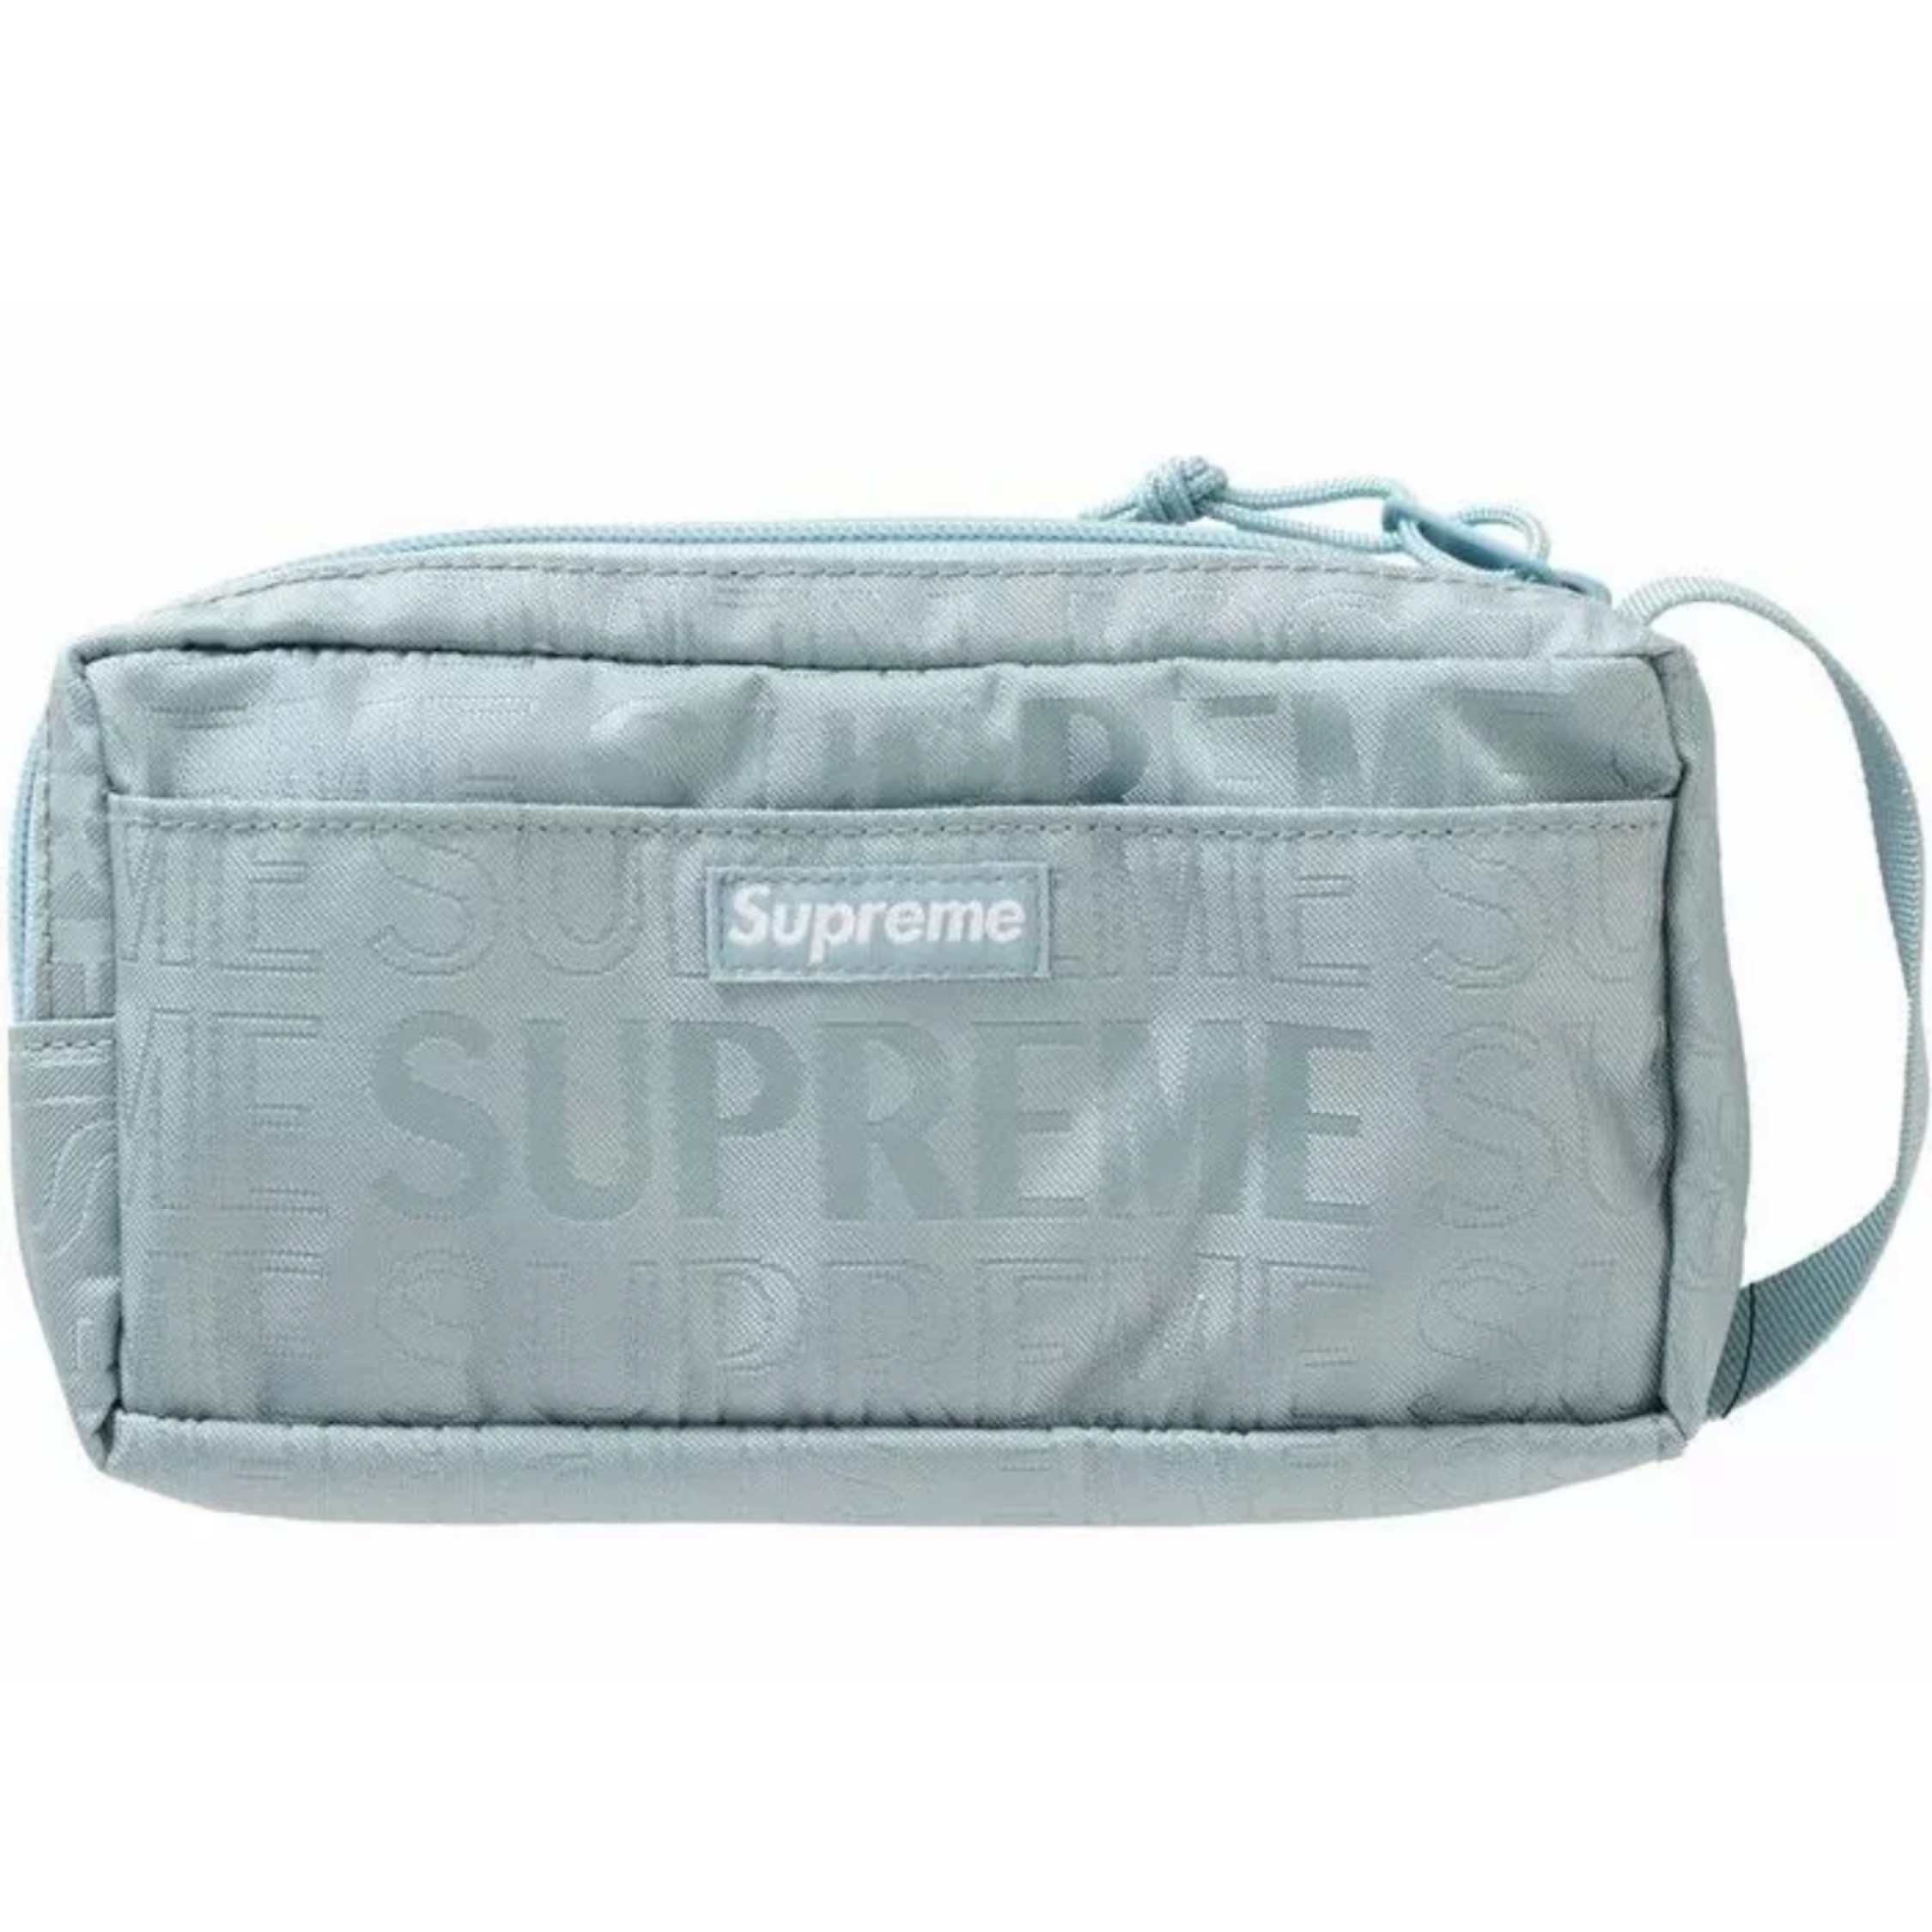 Brand New Supreme Organizer Pouch Ss19 Ice Bag